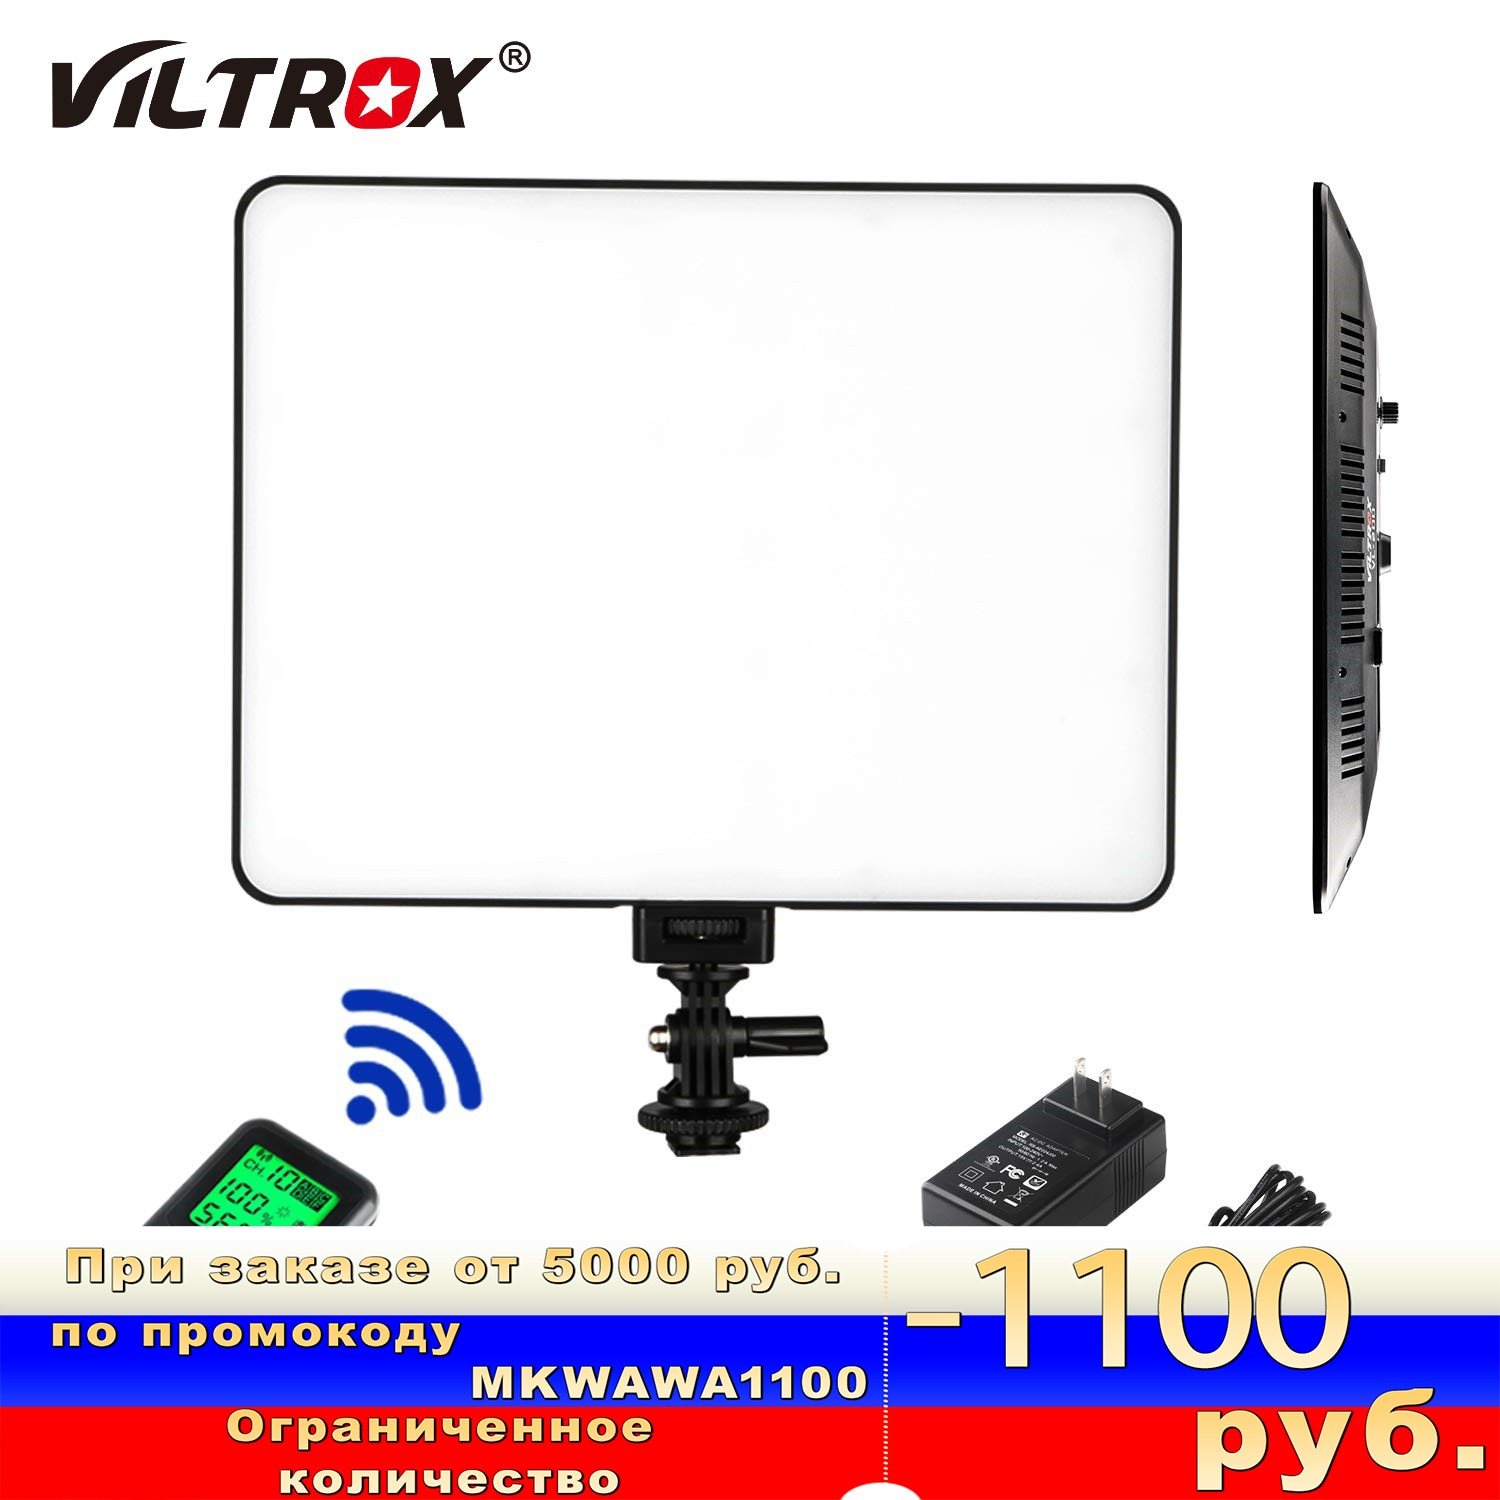 Viltrox VL-200T Slim LED Video Light Dimmable Bi-Color LED Wireless Remote For YouTube Video live Shooting Studio Photography